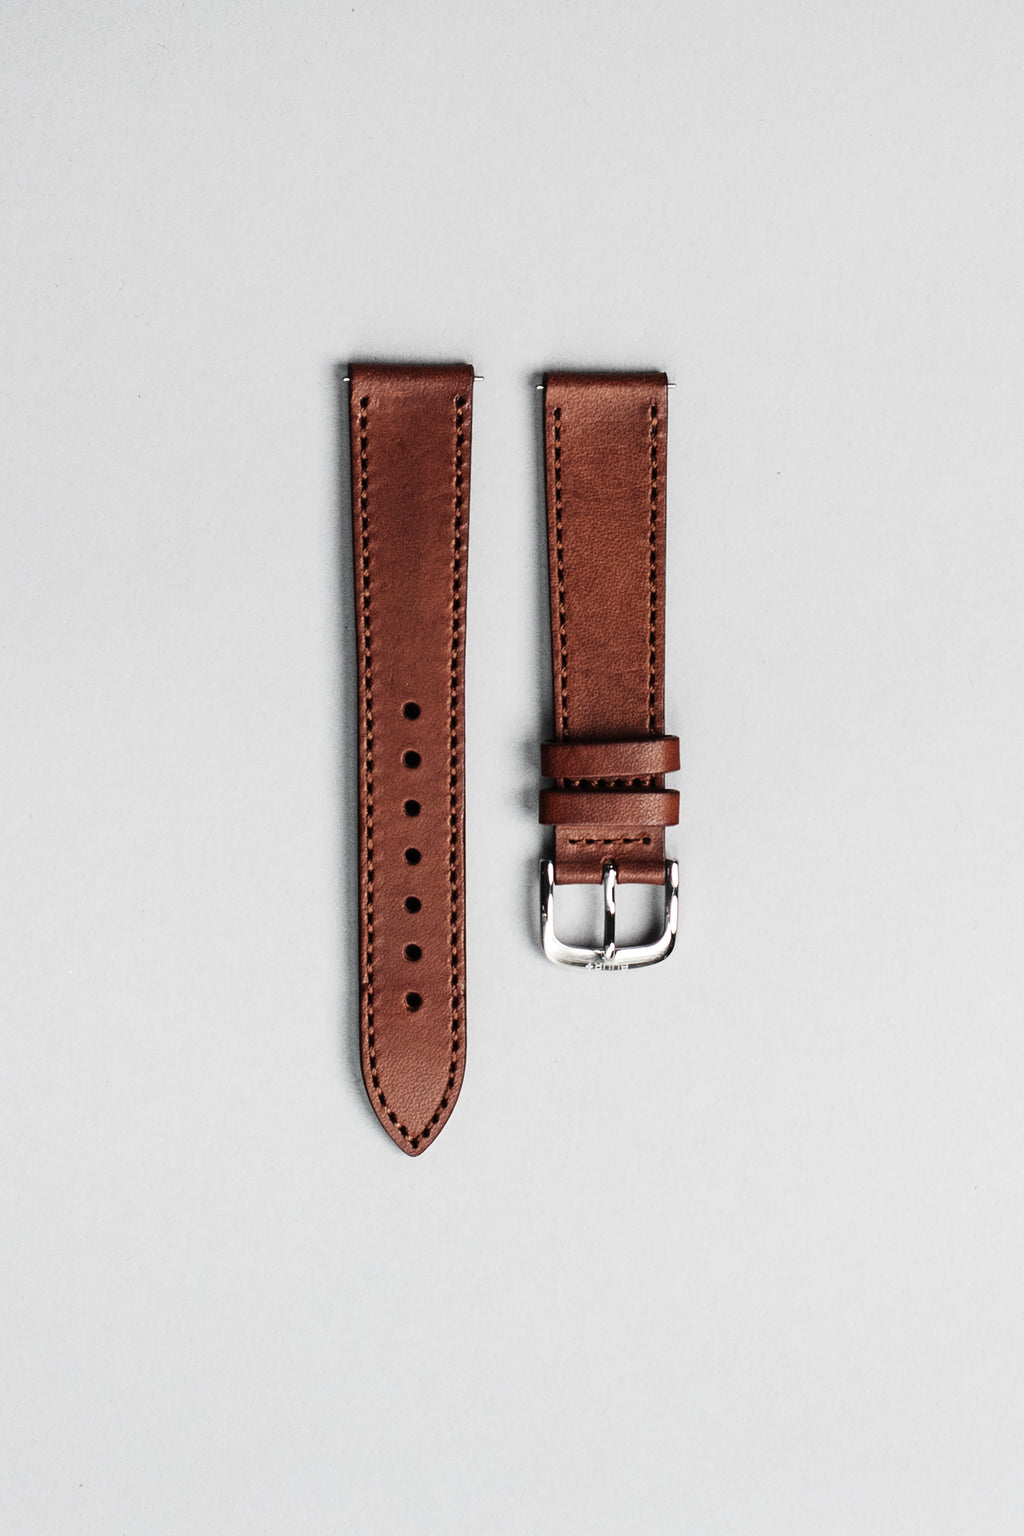 The brown Italian veg tan leather strap with polished buckle. 18mm